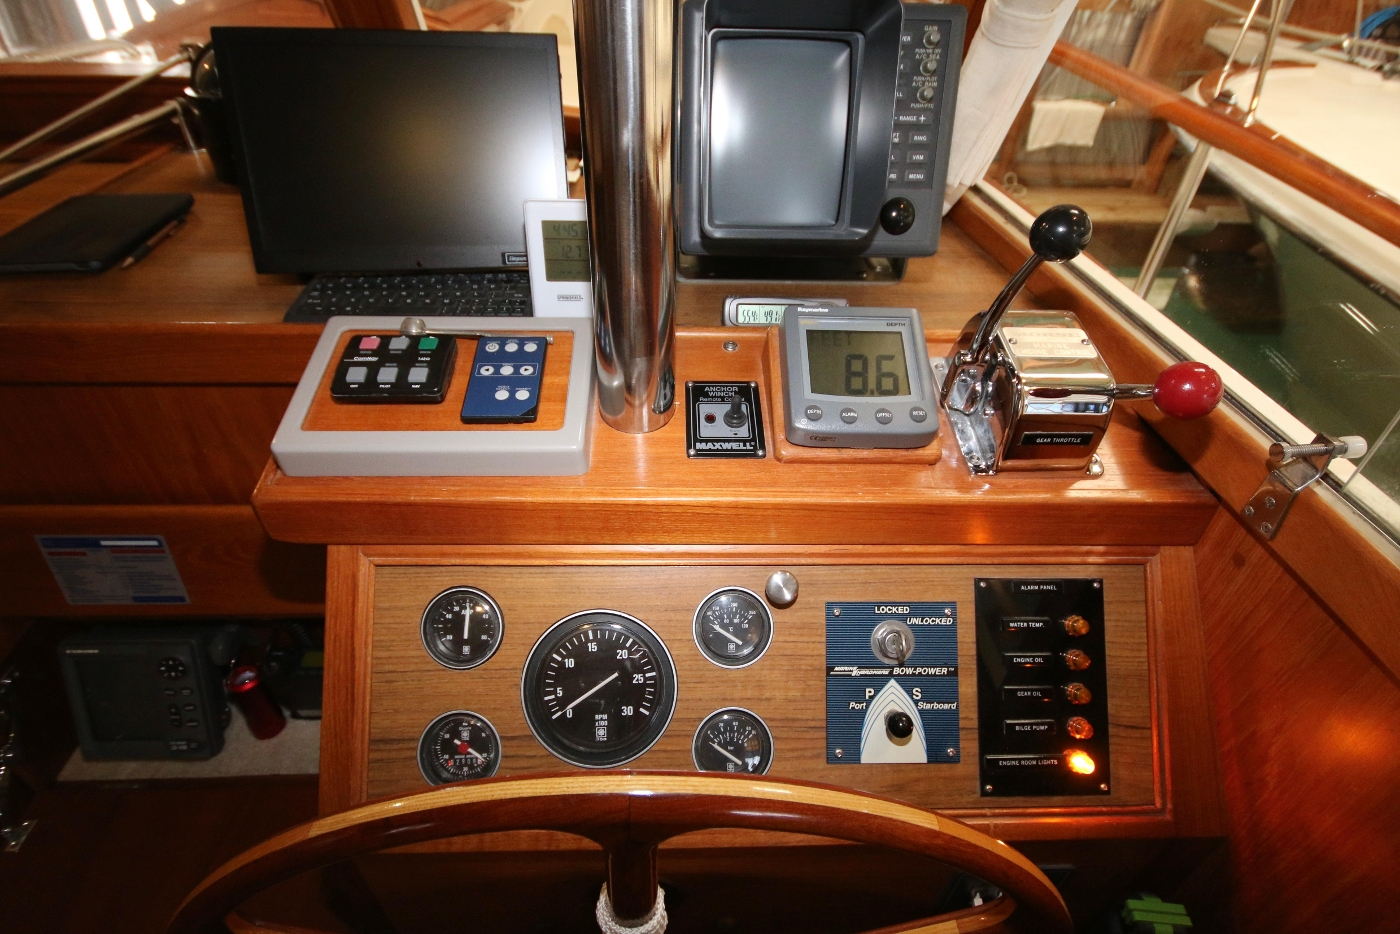 1988 Grand Banks 32, Helm Controls and Electronics